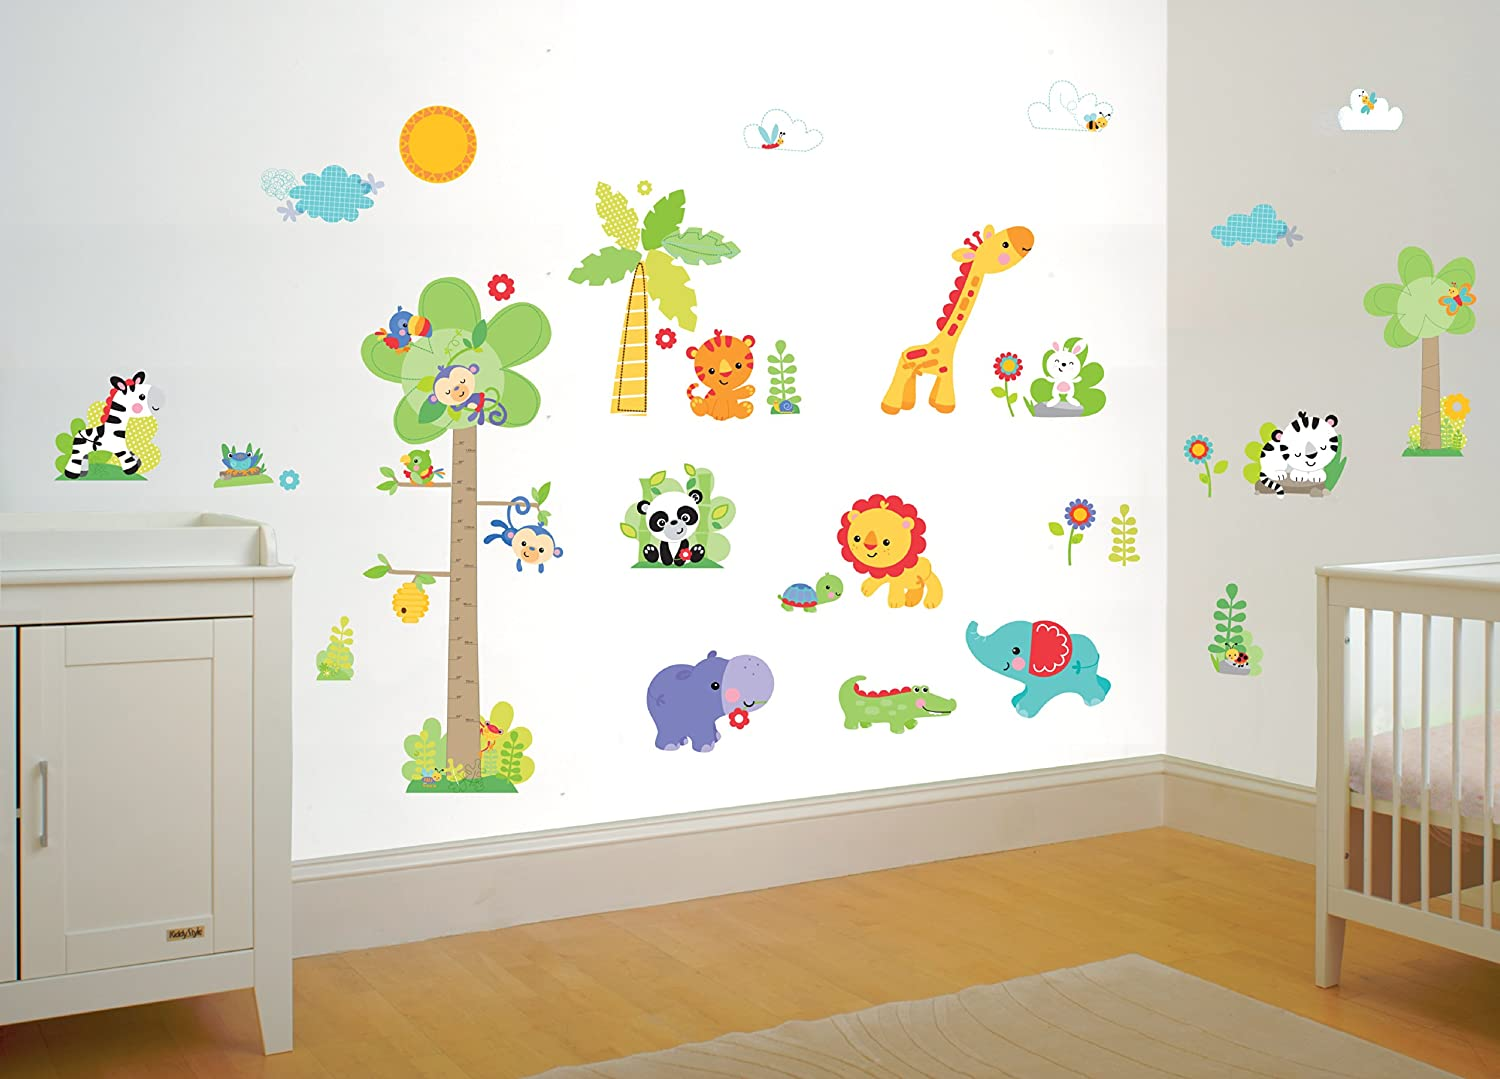 FunTosee Fisher Price Rainforest Nursery Wall Sticker Make Over Kit:  Amazon.co.uk: Baby